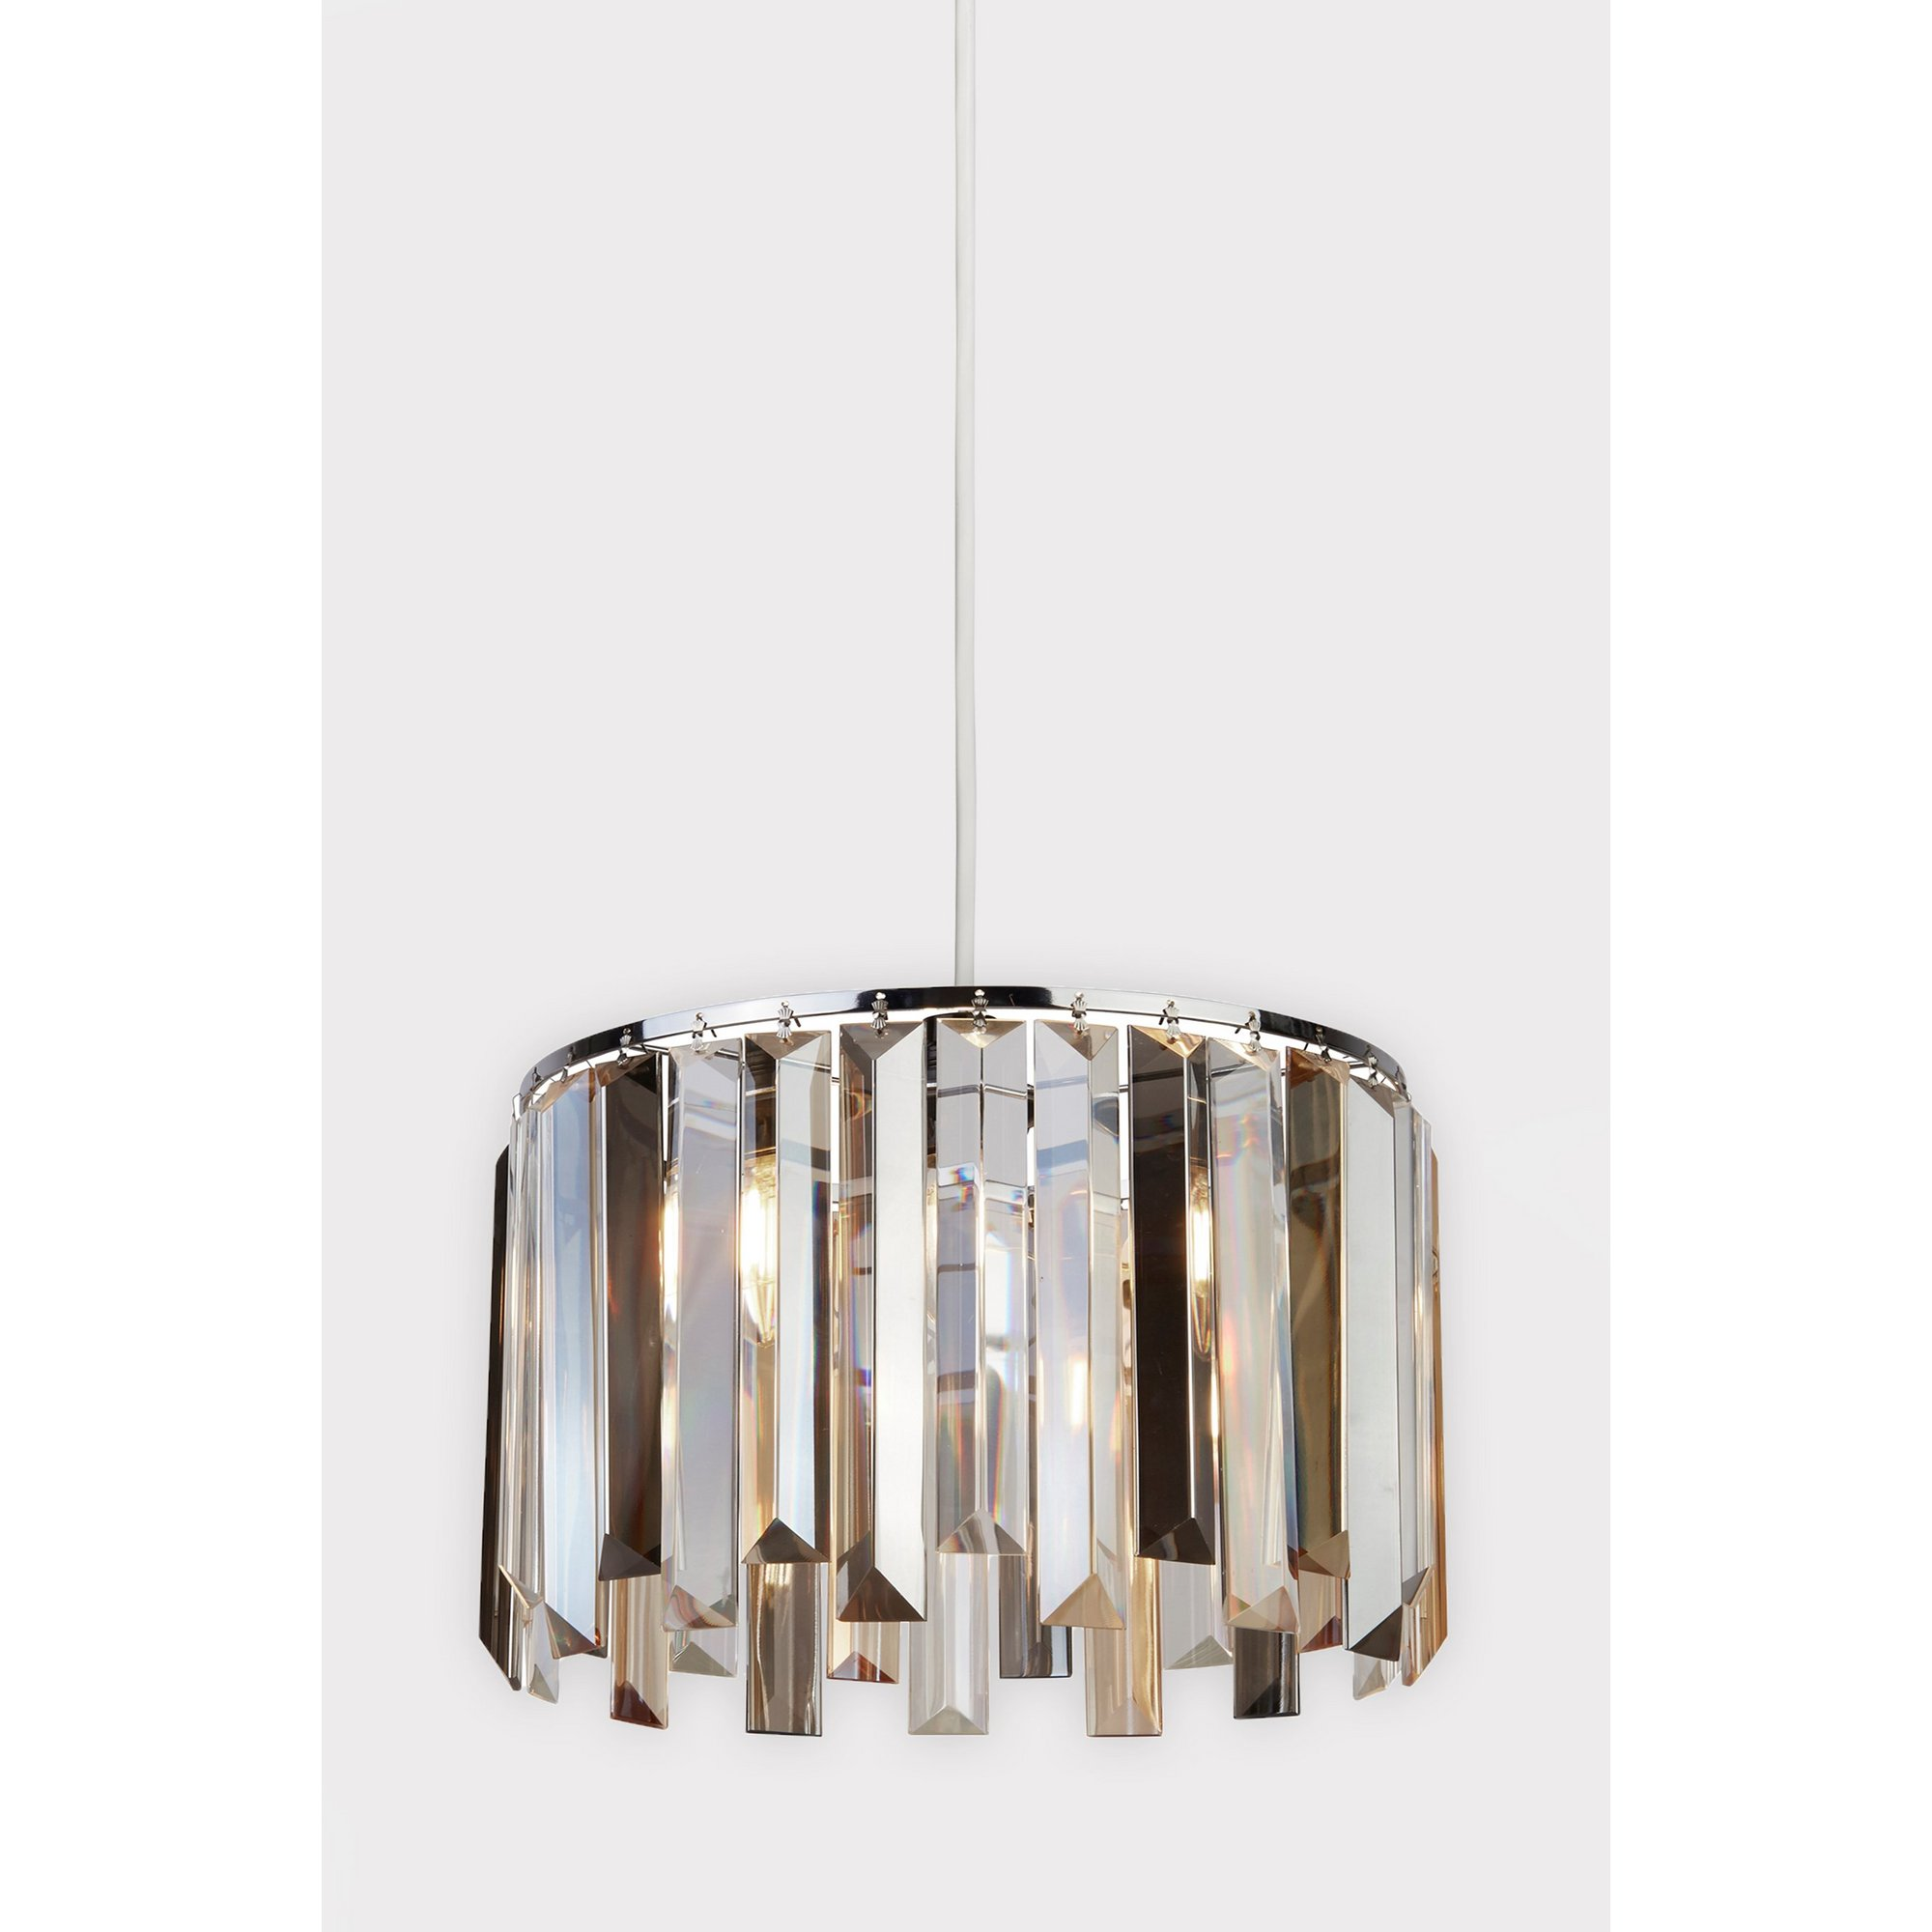 Image of Chrome Easy Fit Pendant with Glass Drops